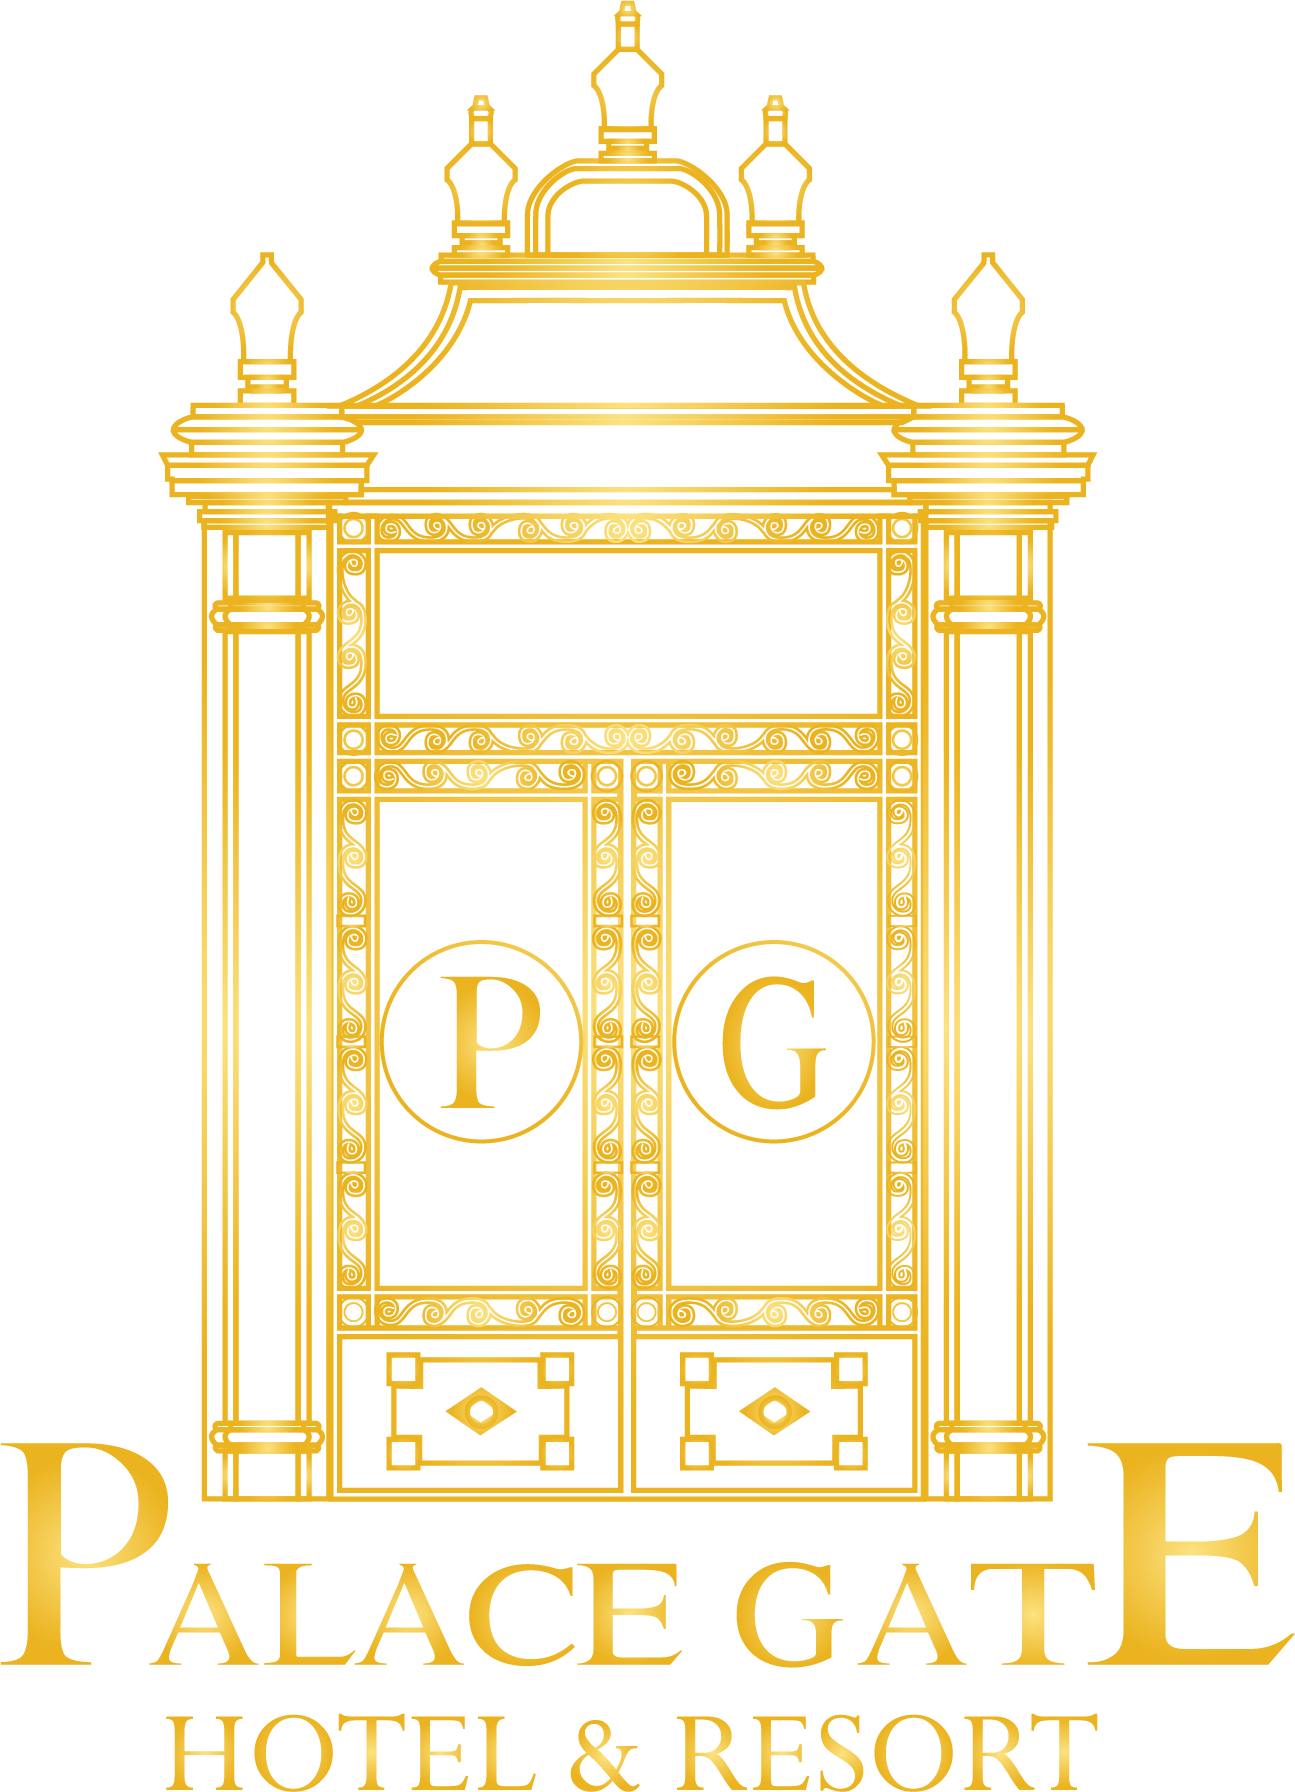 Palace clipart phnom penh png. Gate hotel resort your